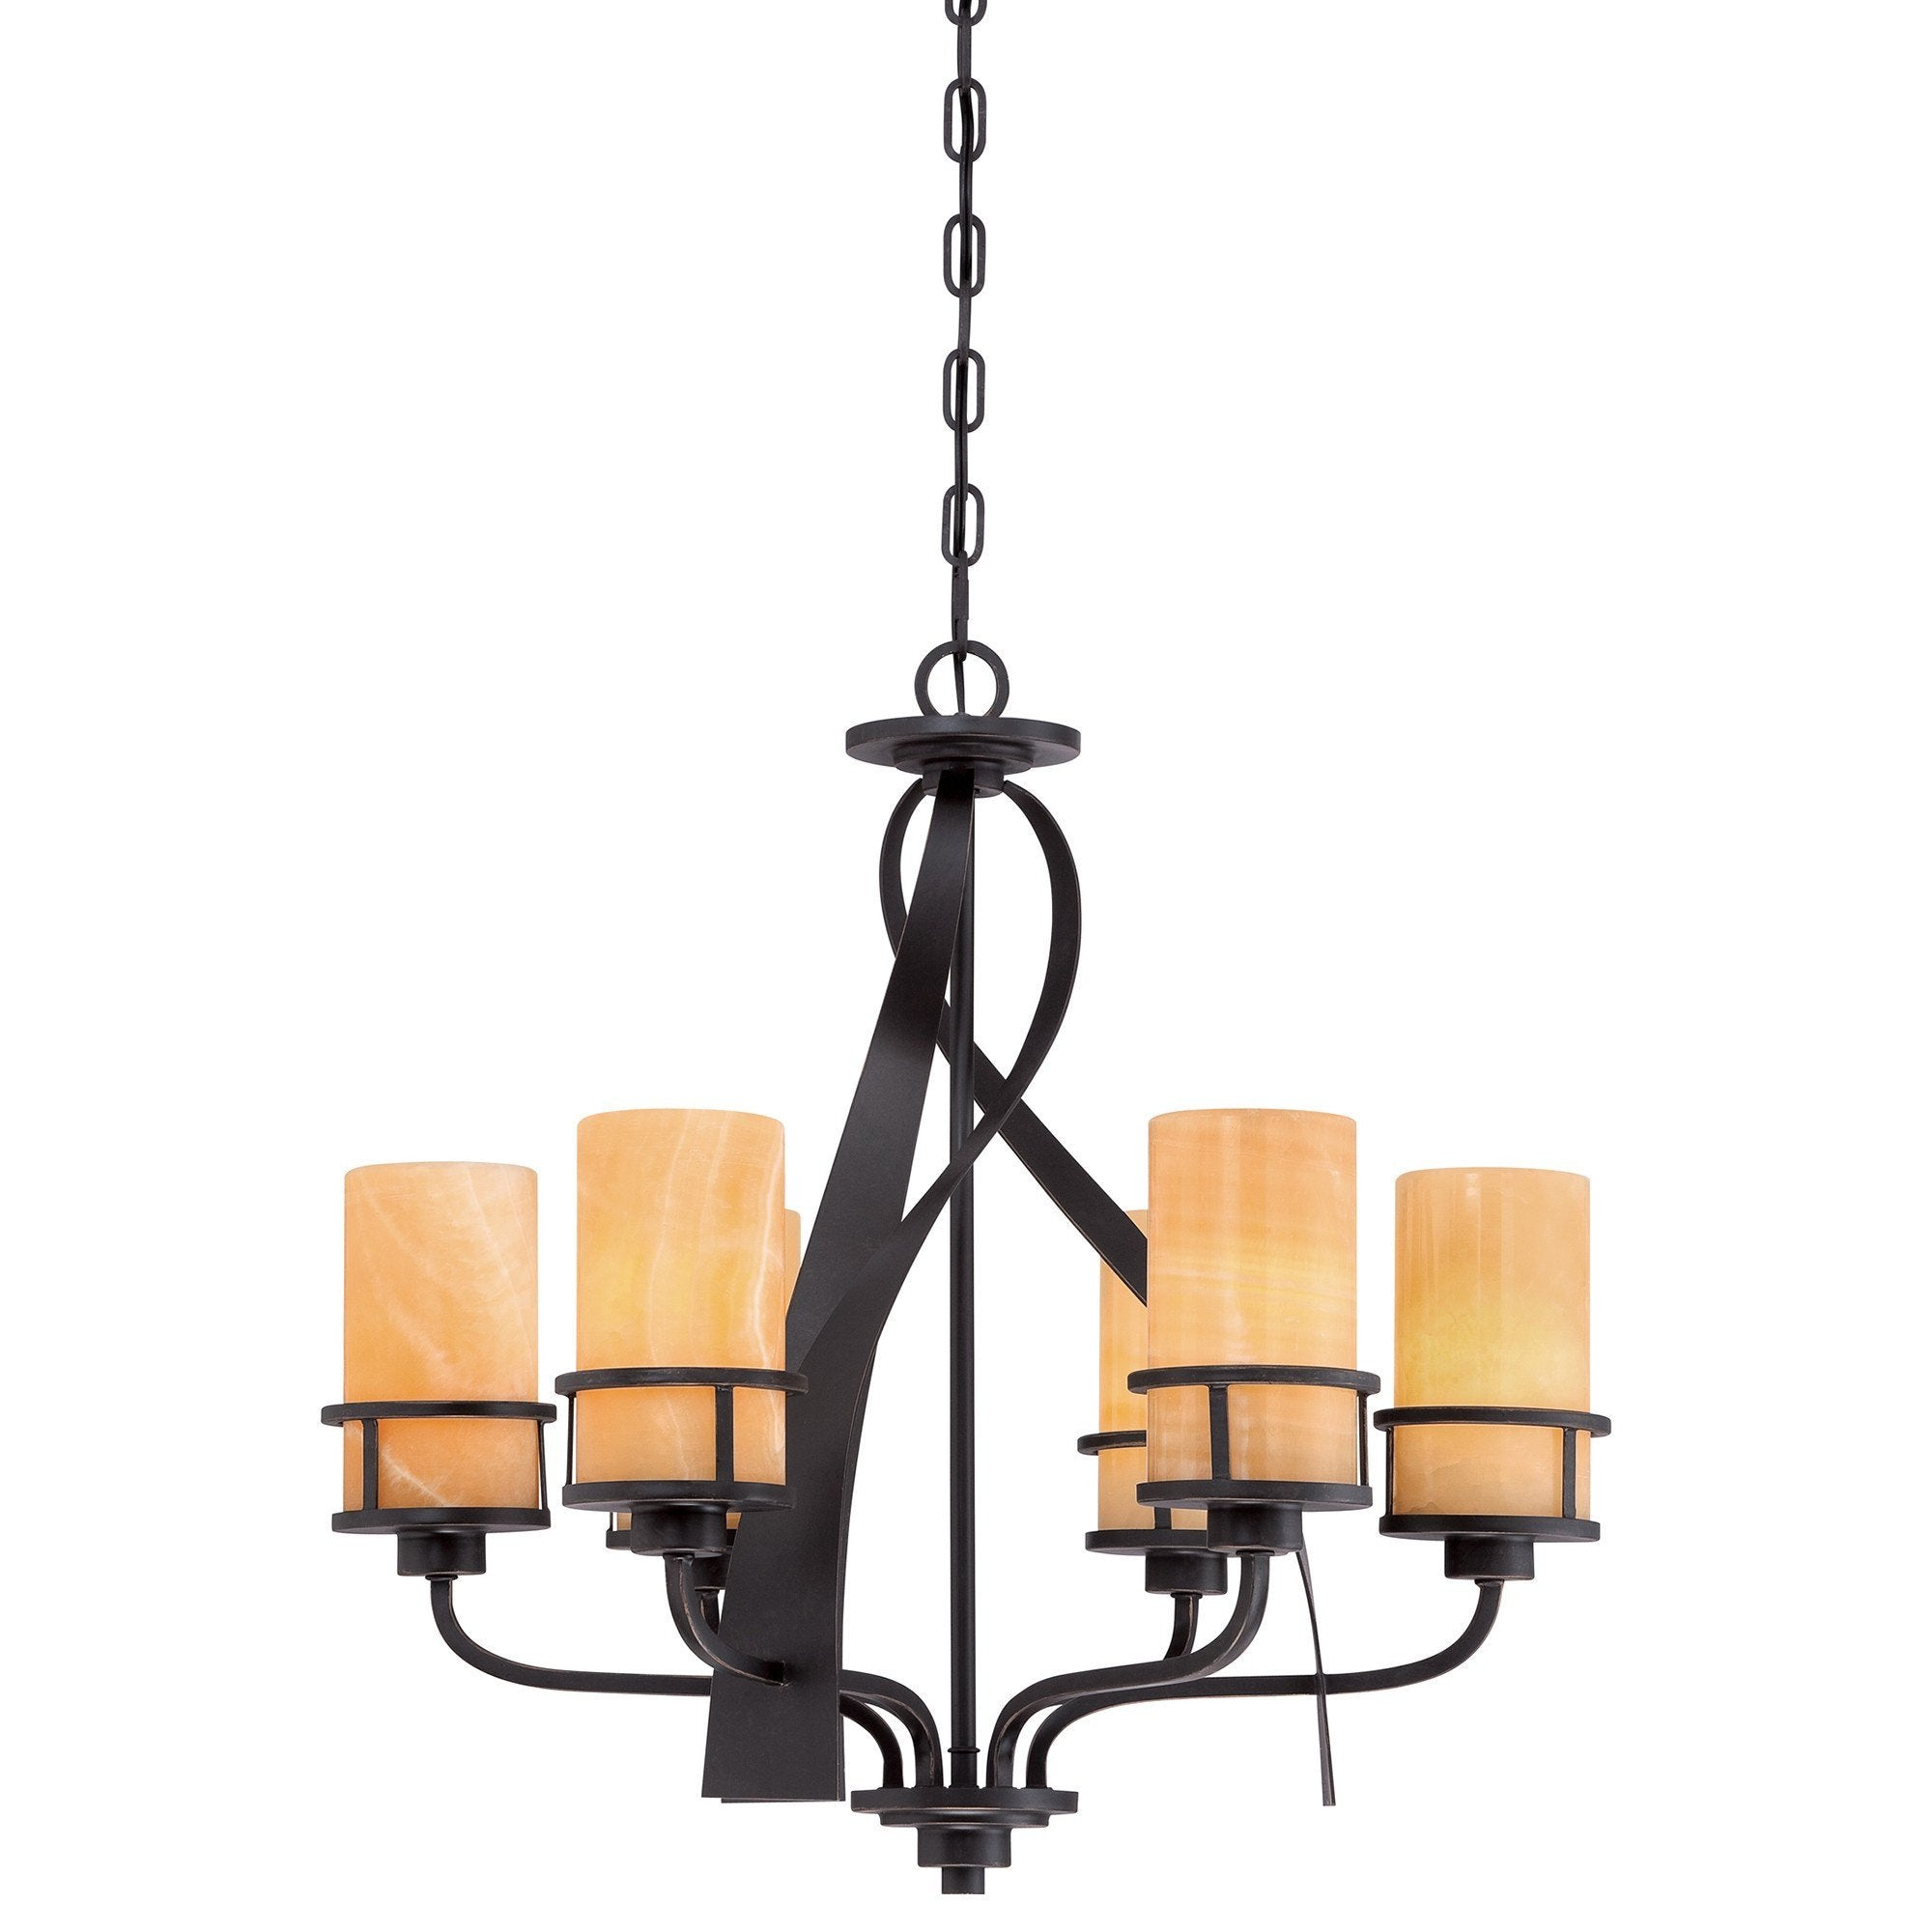 Quoizel Kyle 6 Light Chandelier - London Lighting - 1